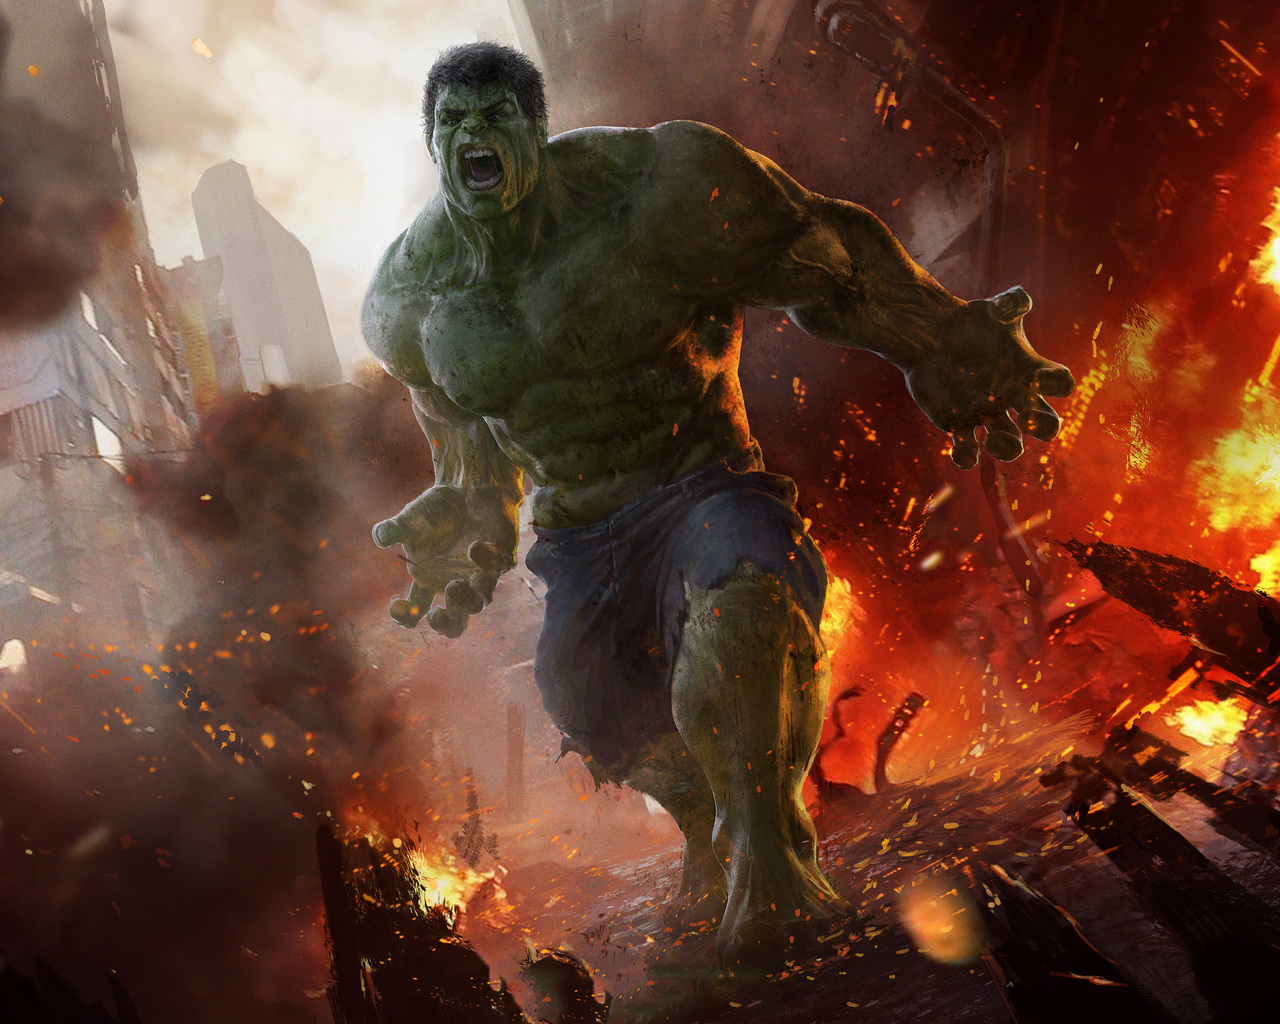 hulk-doing-destruction-artwork-qq.jpg